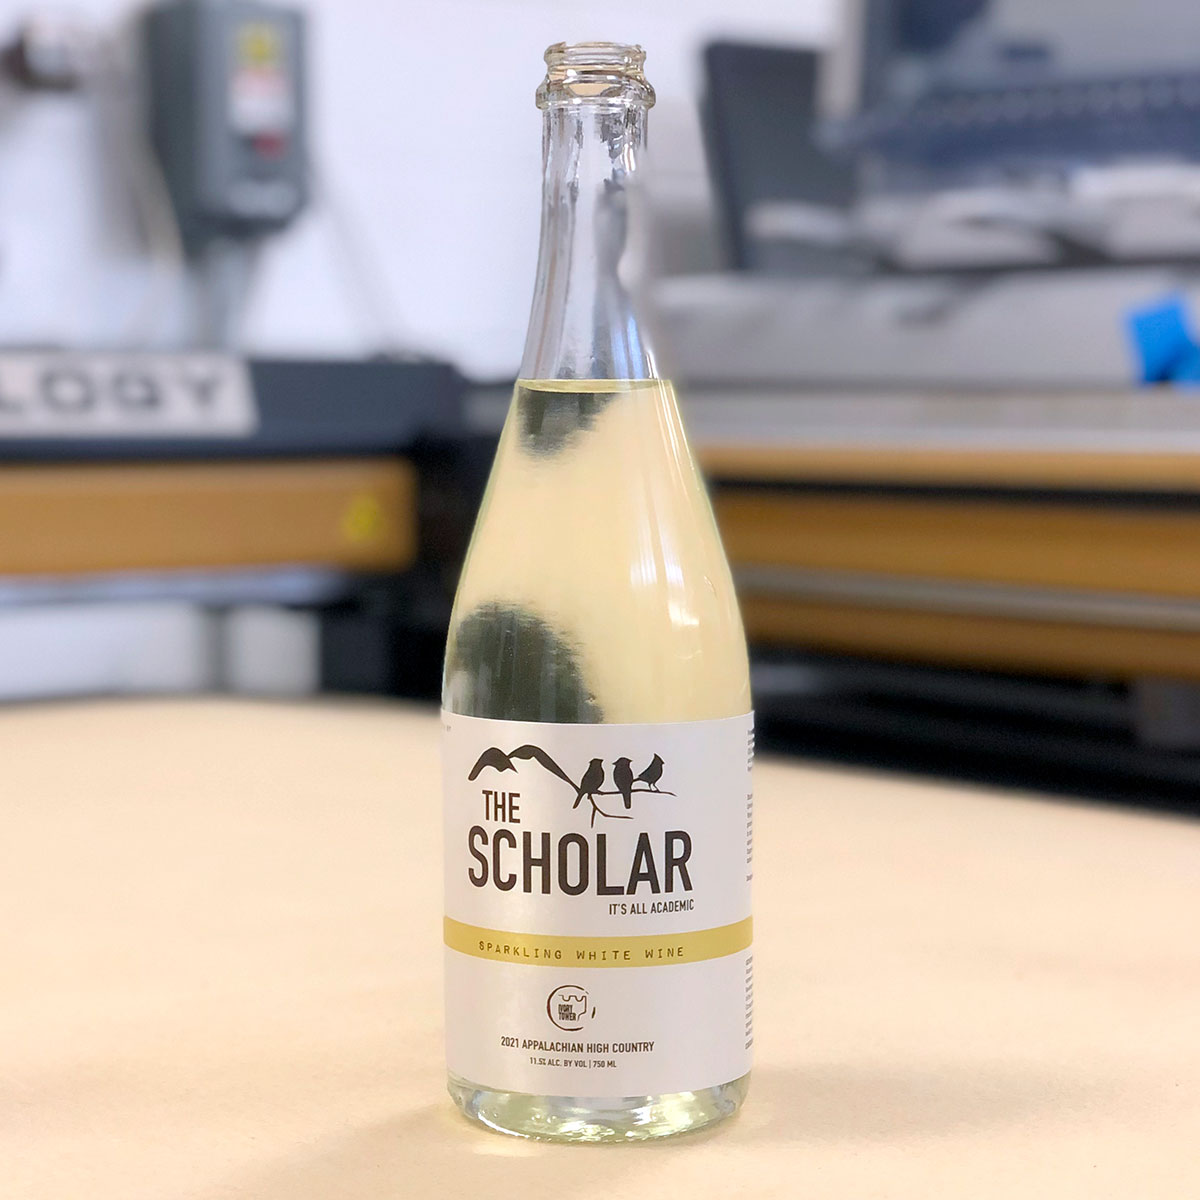 The Scholar: Sparkling White Wine product label